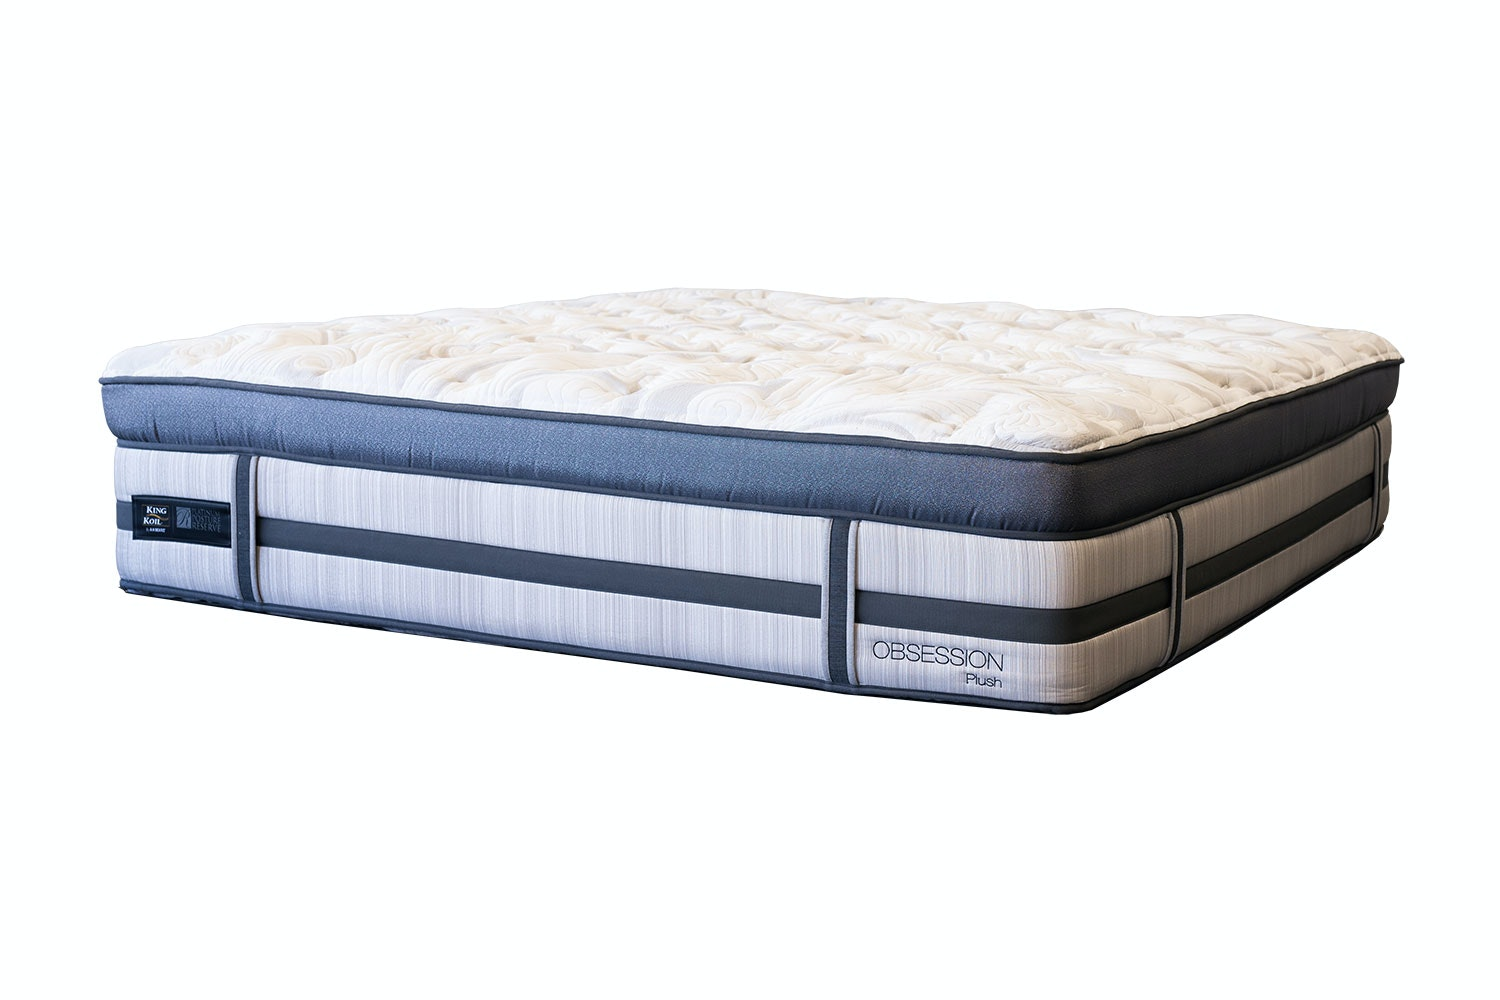 Obsession Plus Double Mattress by King Koil